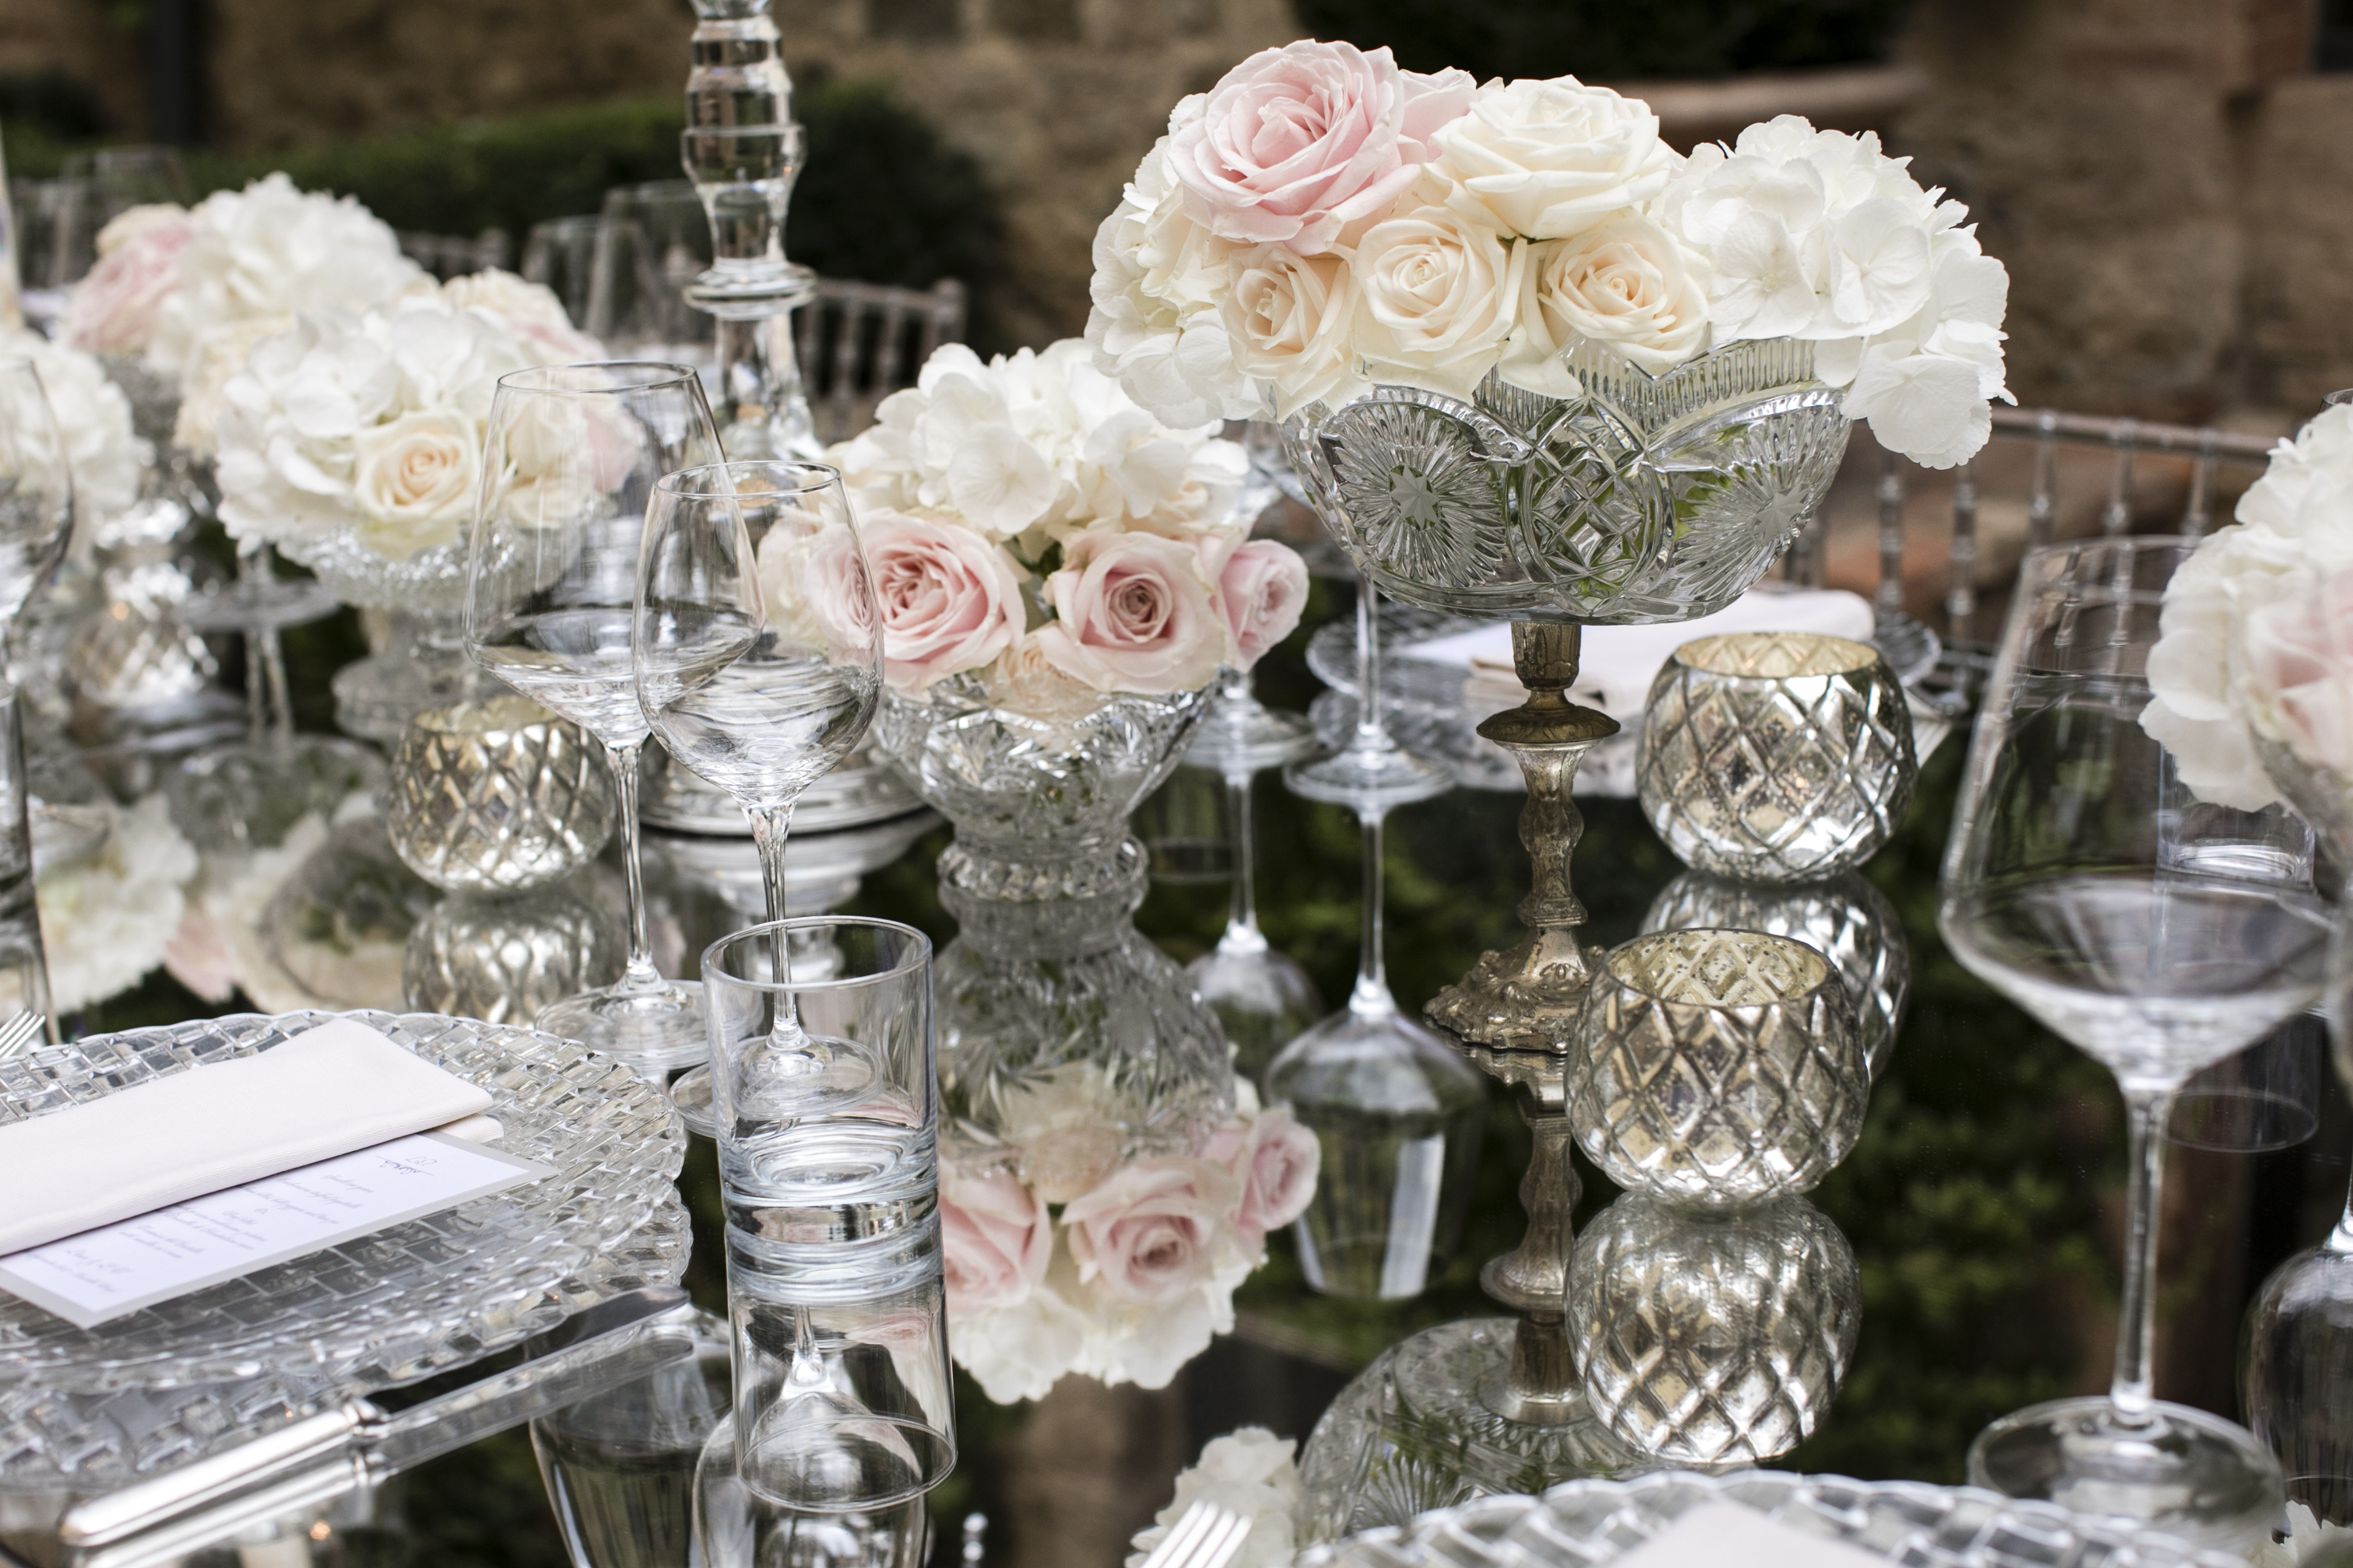 preparation of the wedding table in a Tuscan villa